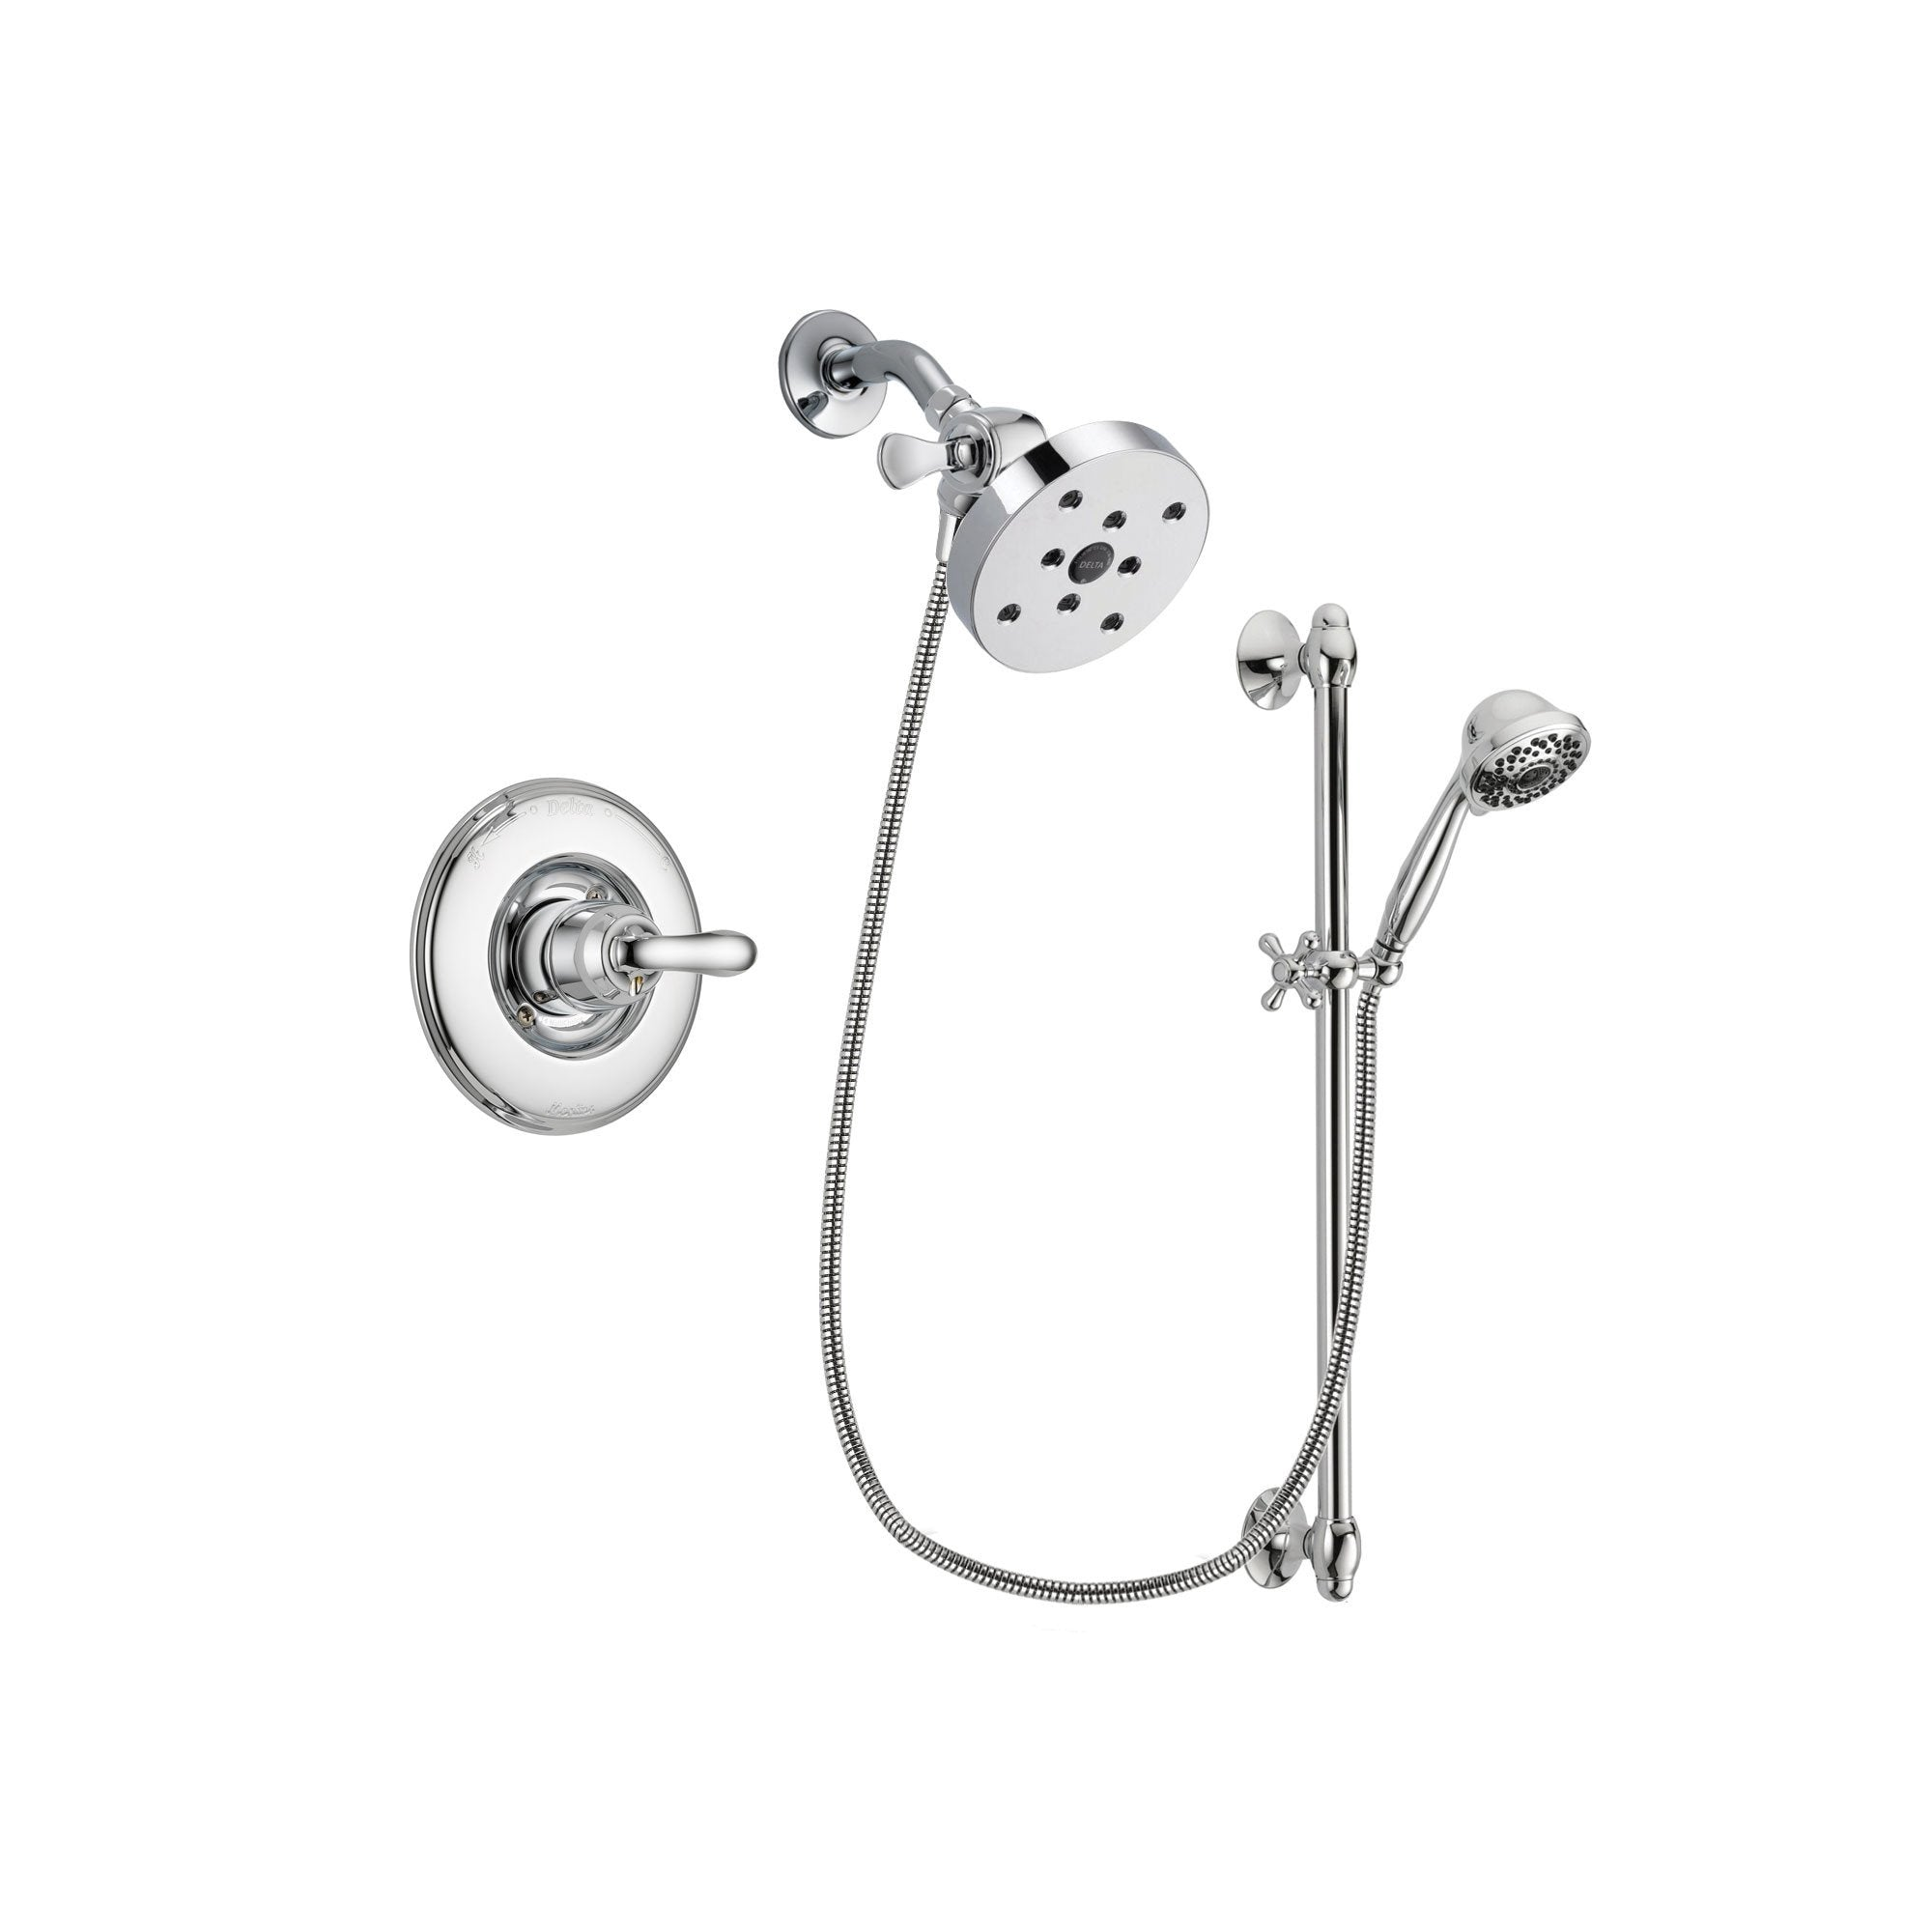 Delta Linden Chrome Shower Faucet System w/ Shower Head and Hand Shower DSP0682V